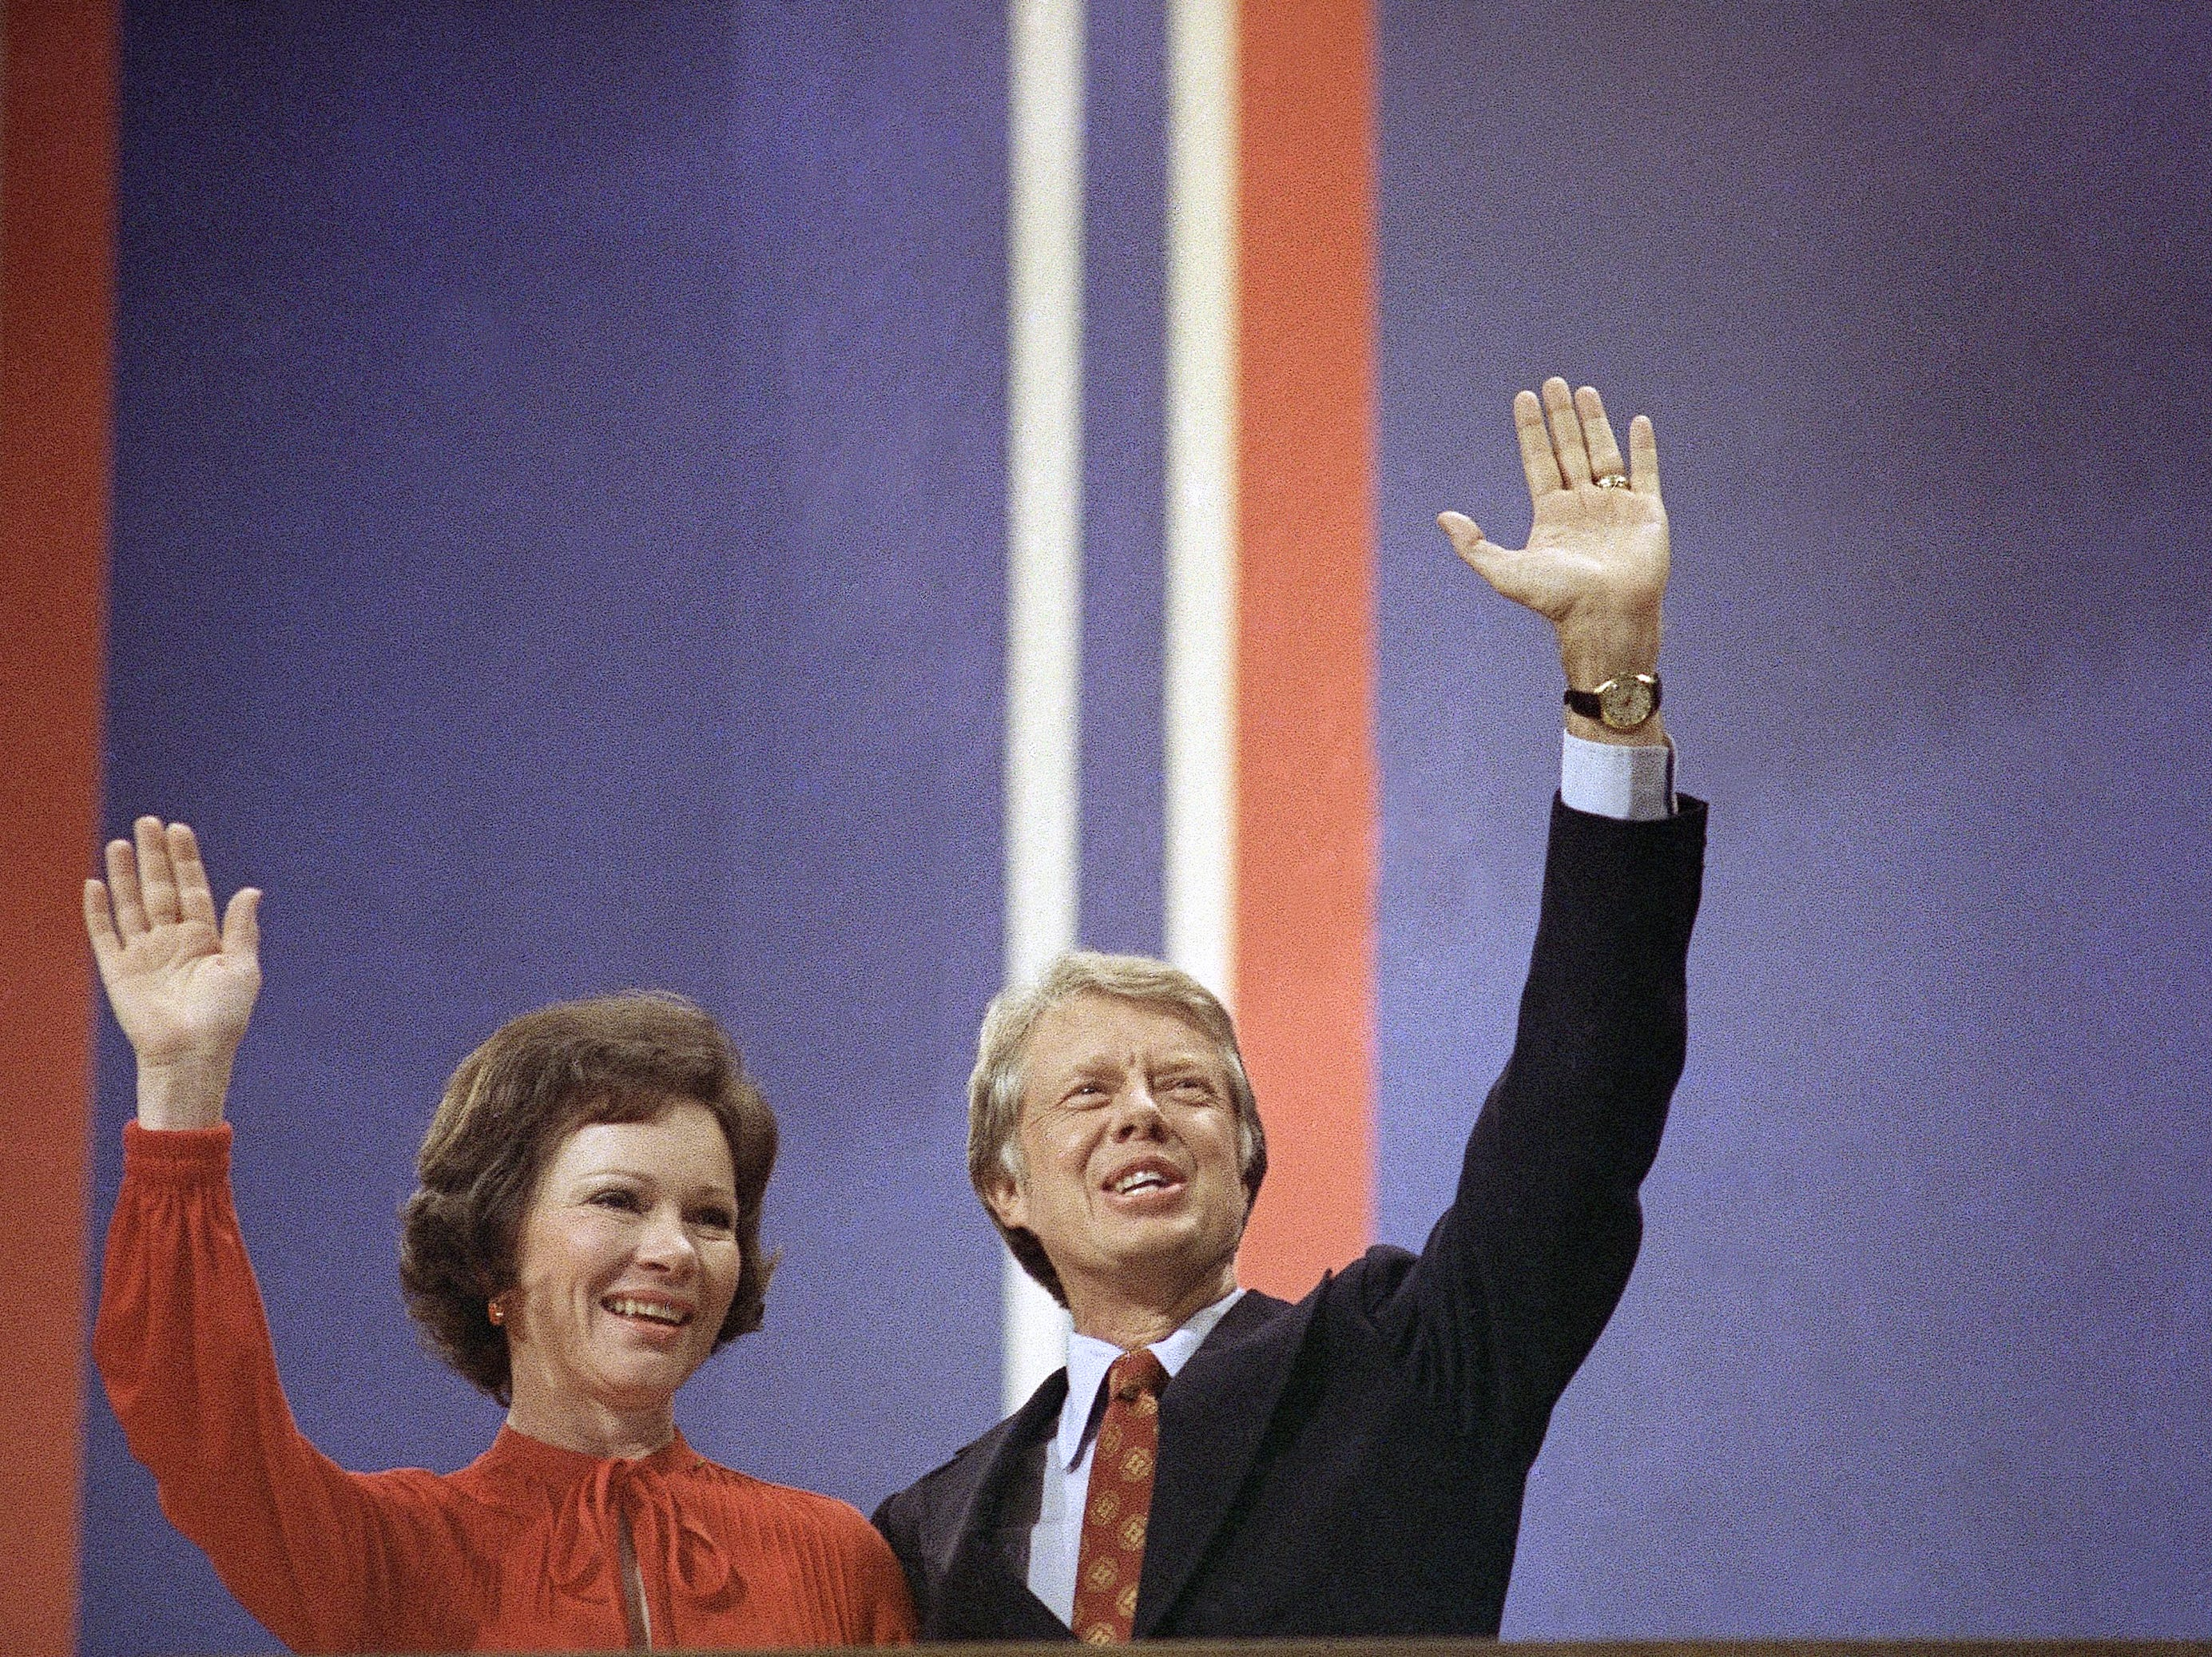 Jimmy Carter with wife Rosalynn at the Democratic National Convention at Madison Square Garden in New York on July 15, 1976.